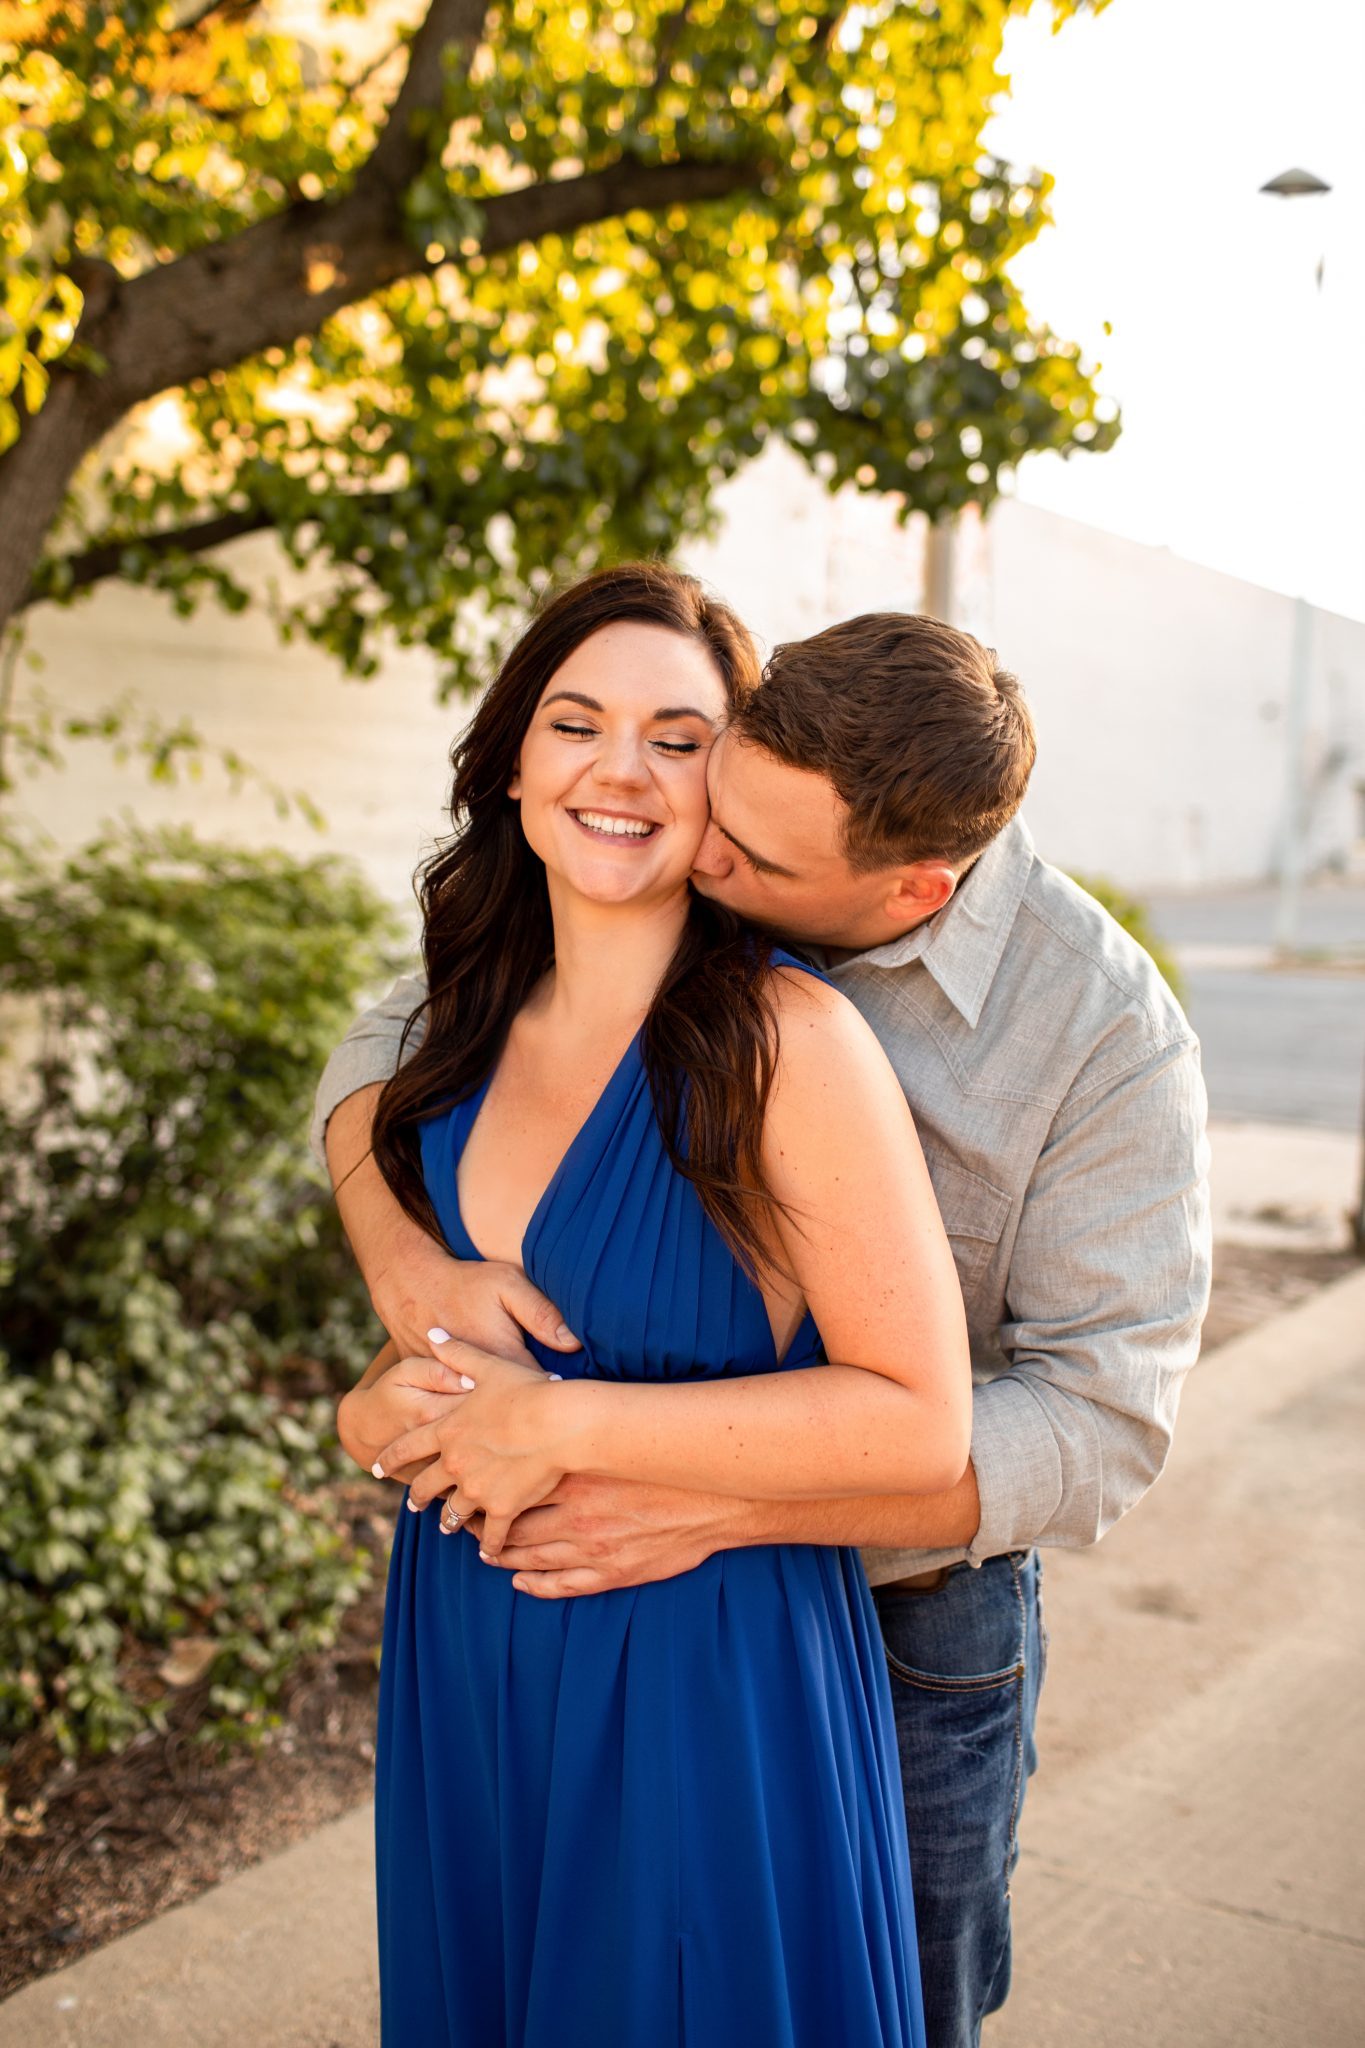 Trevor-Haley-Wichita-Engagement-Session-Preview-21